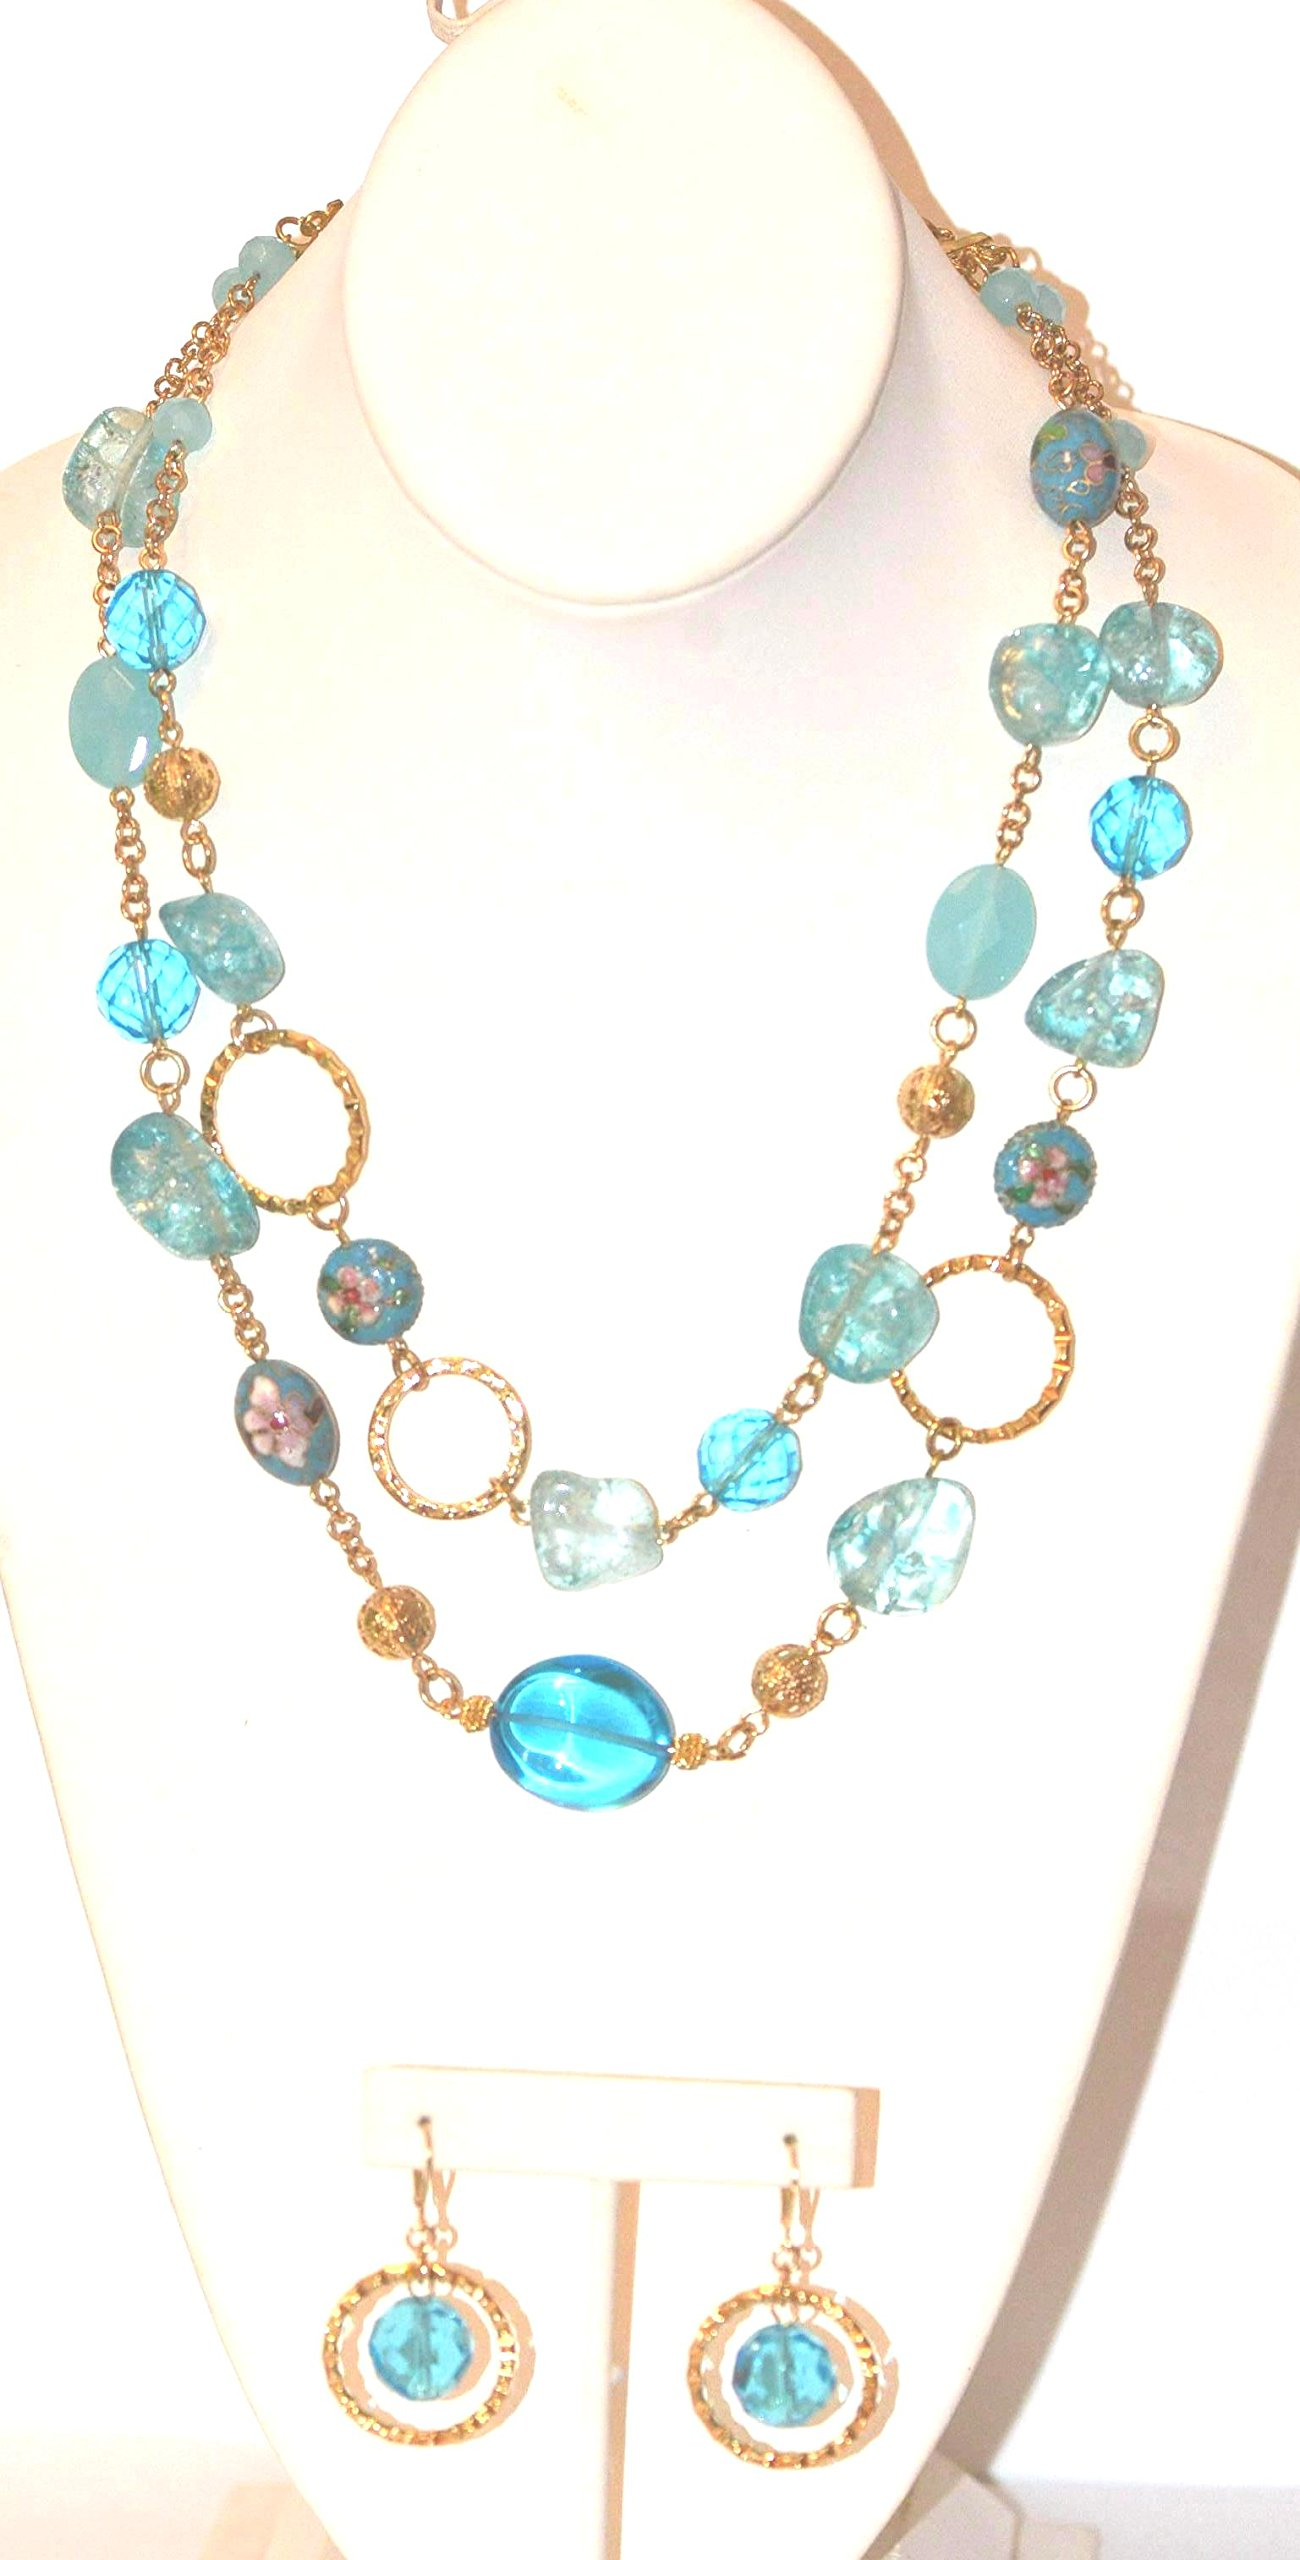 18'' Long 2 Row Necklace with Blue Glass Nuggets, Glass Beads, Cloisonne Bead + Matching Stone Earring